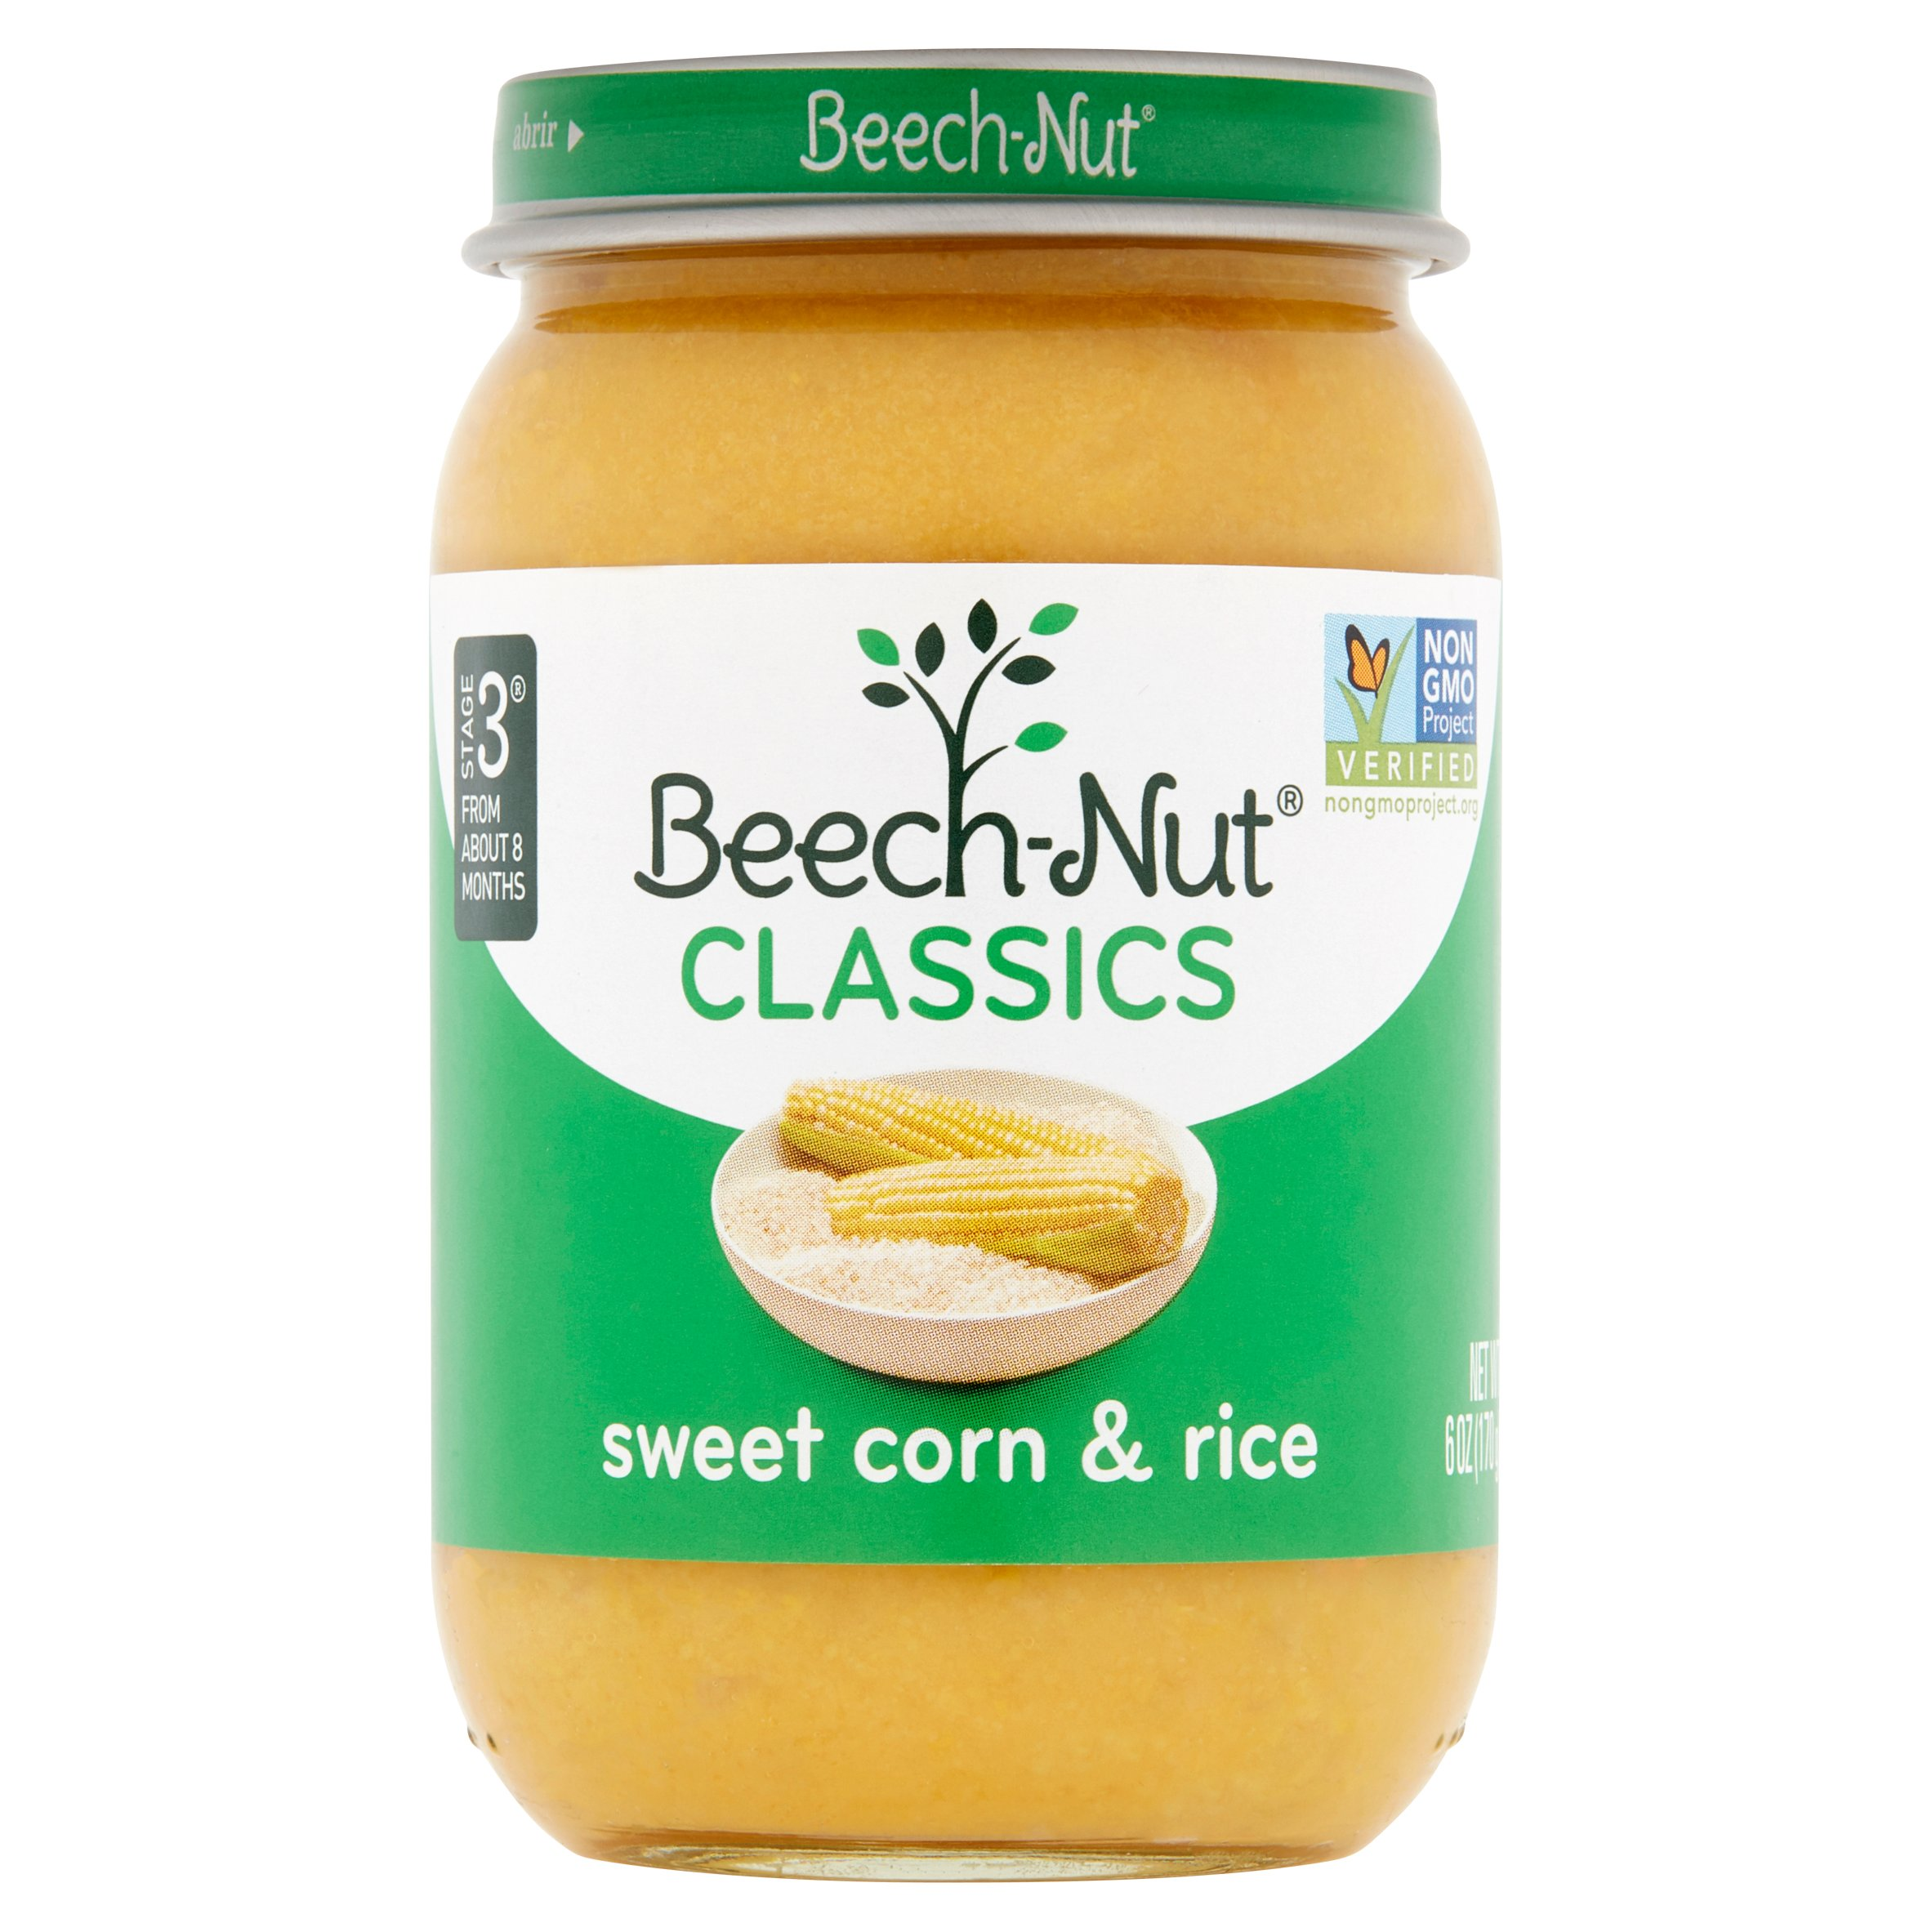 Beech-Nut Classics Sweet Corn & Rice Baby Food Stage 3 From About 8 Months, 6 oz, 10 count